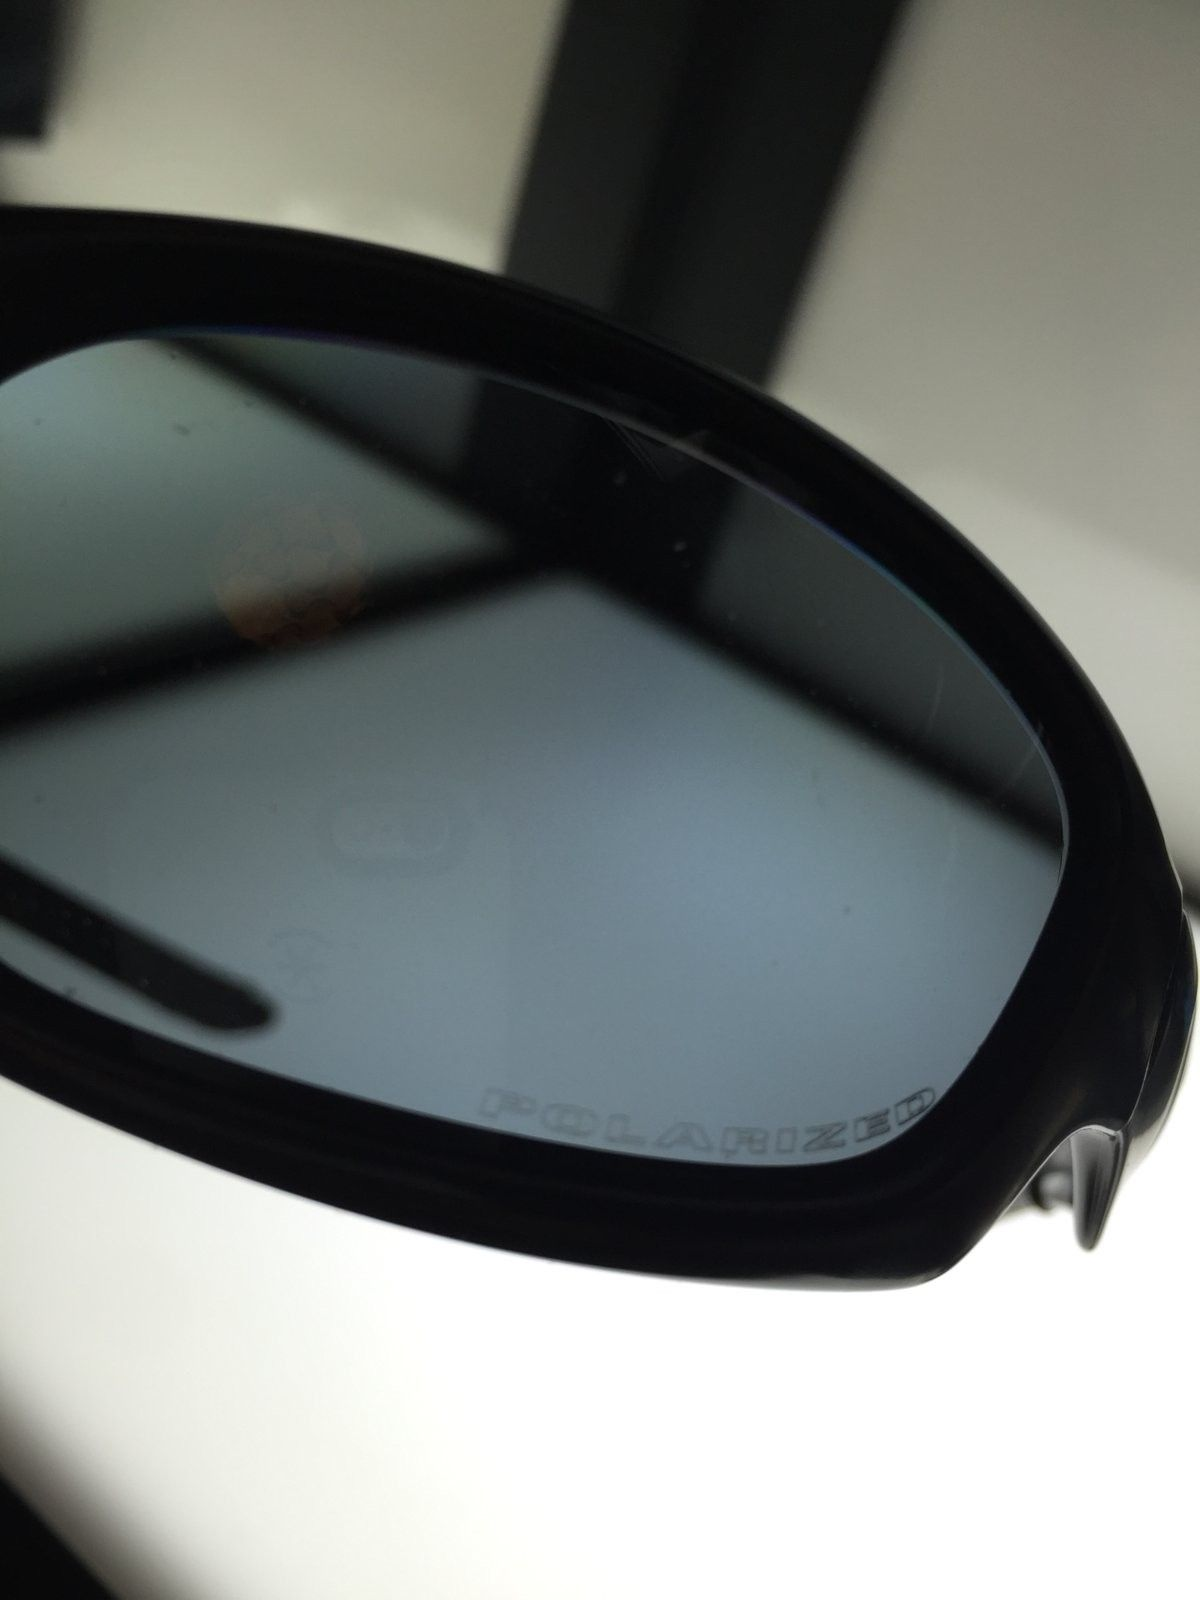 New Straight Jacket II mate black w/ grey polarized SKU: 24-124 - $100 - image.jpeg